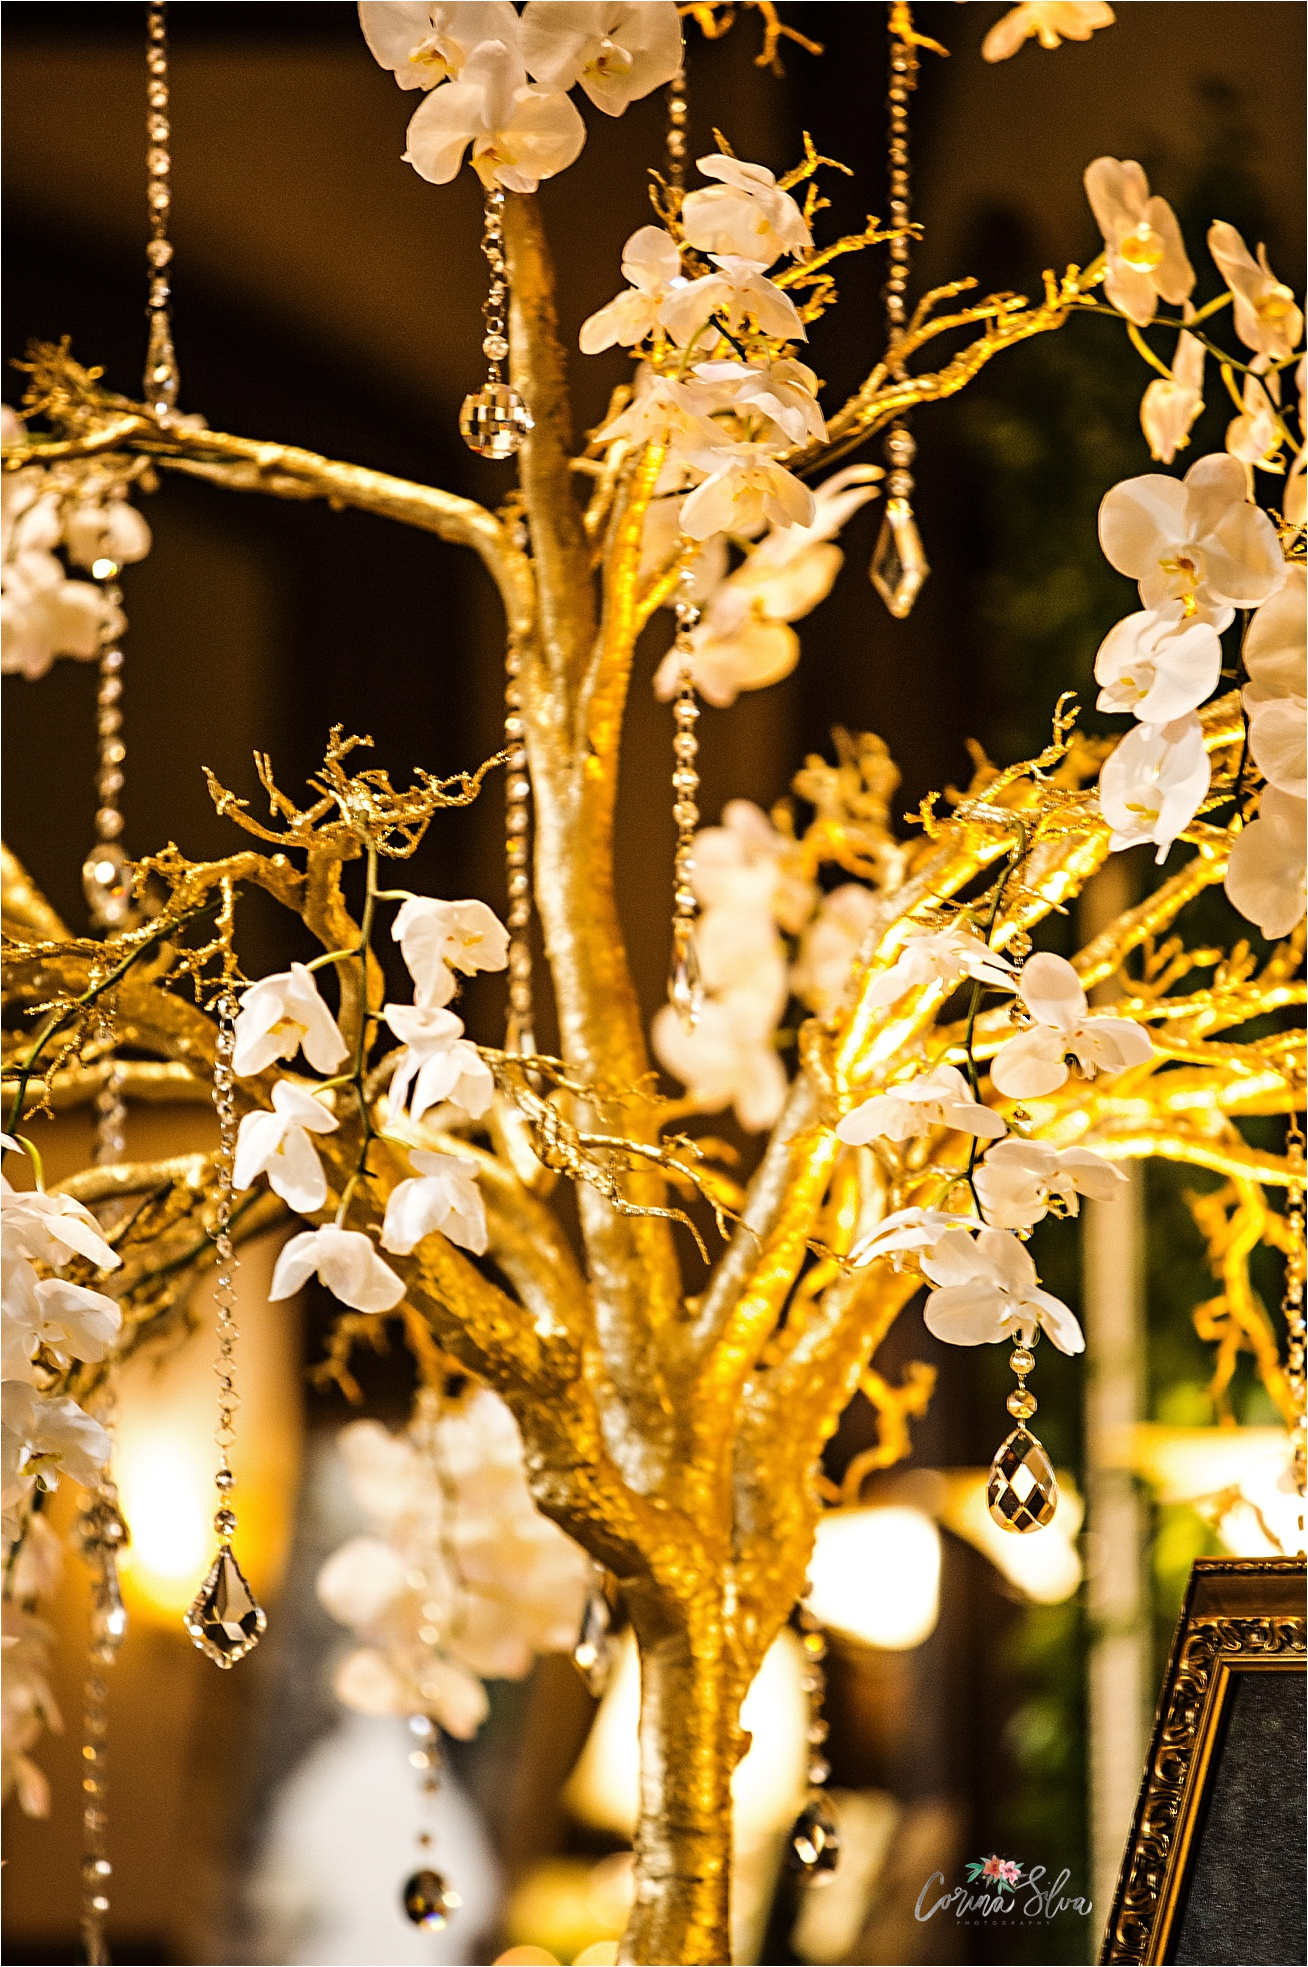 RSG-Event-and-Designs-luxury-wedding-decor-photos, Corina-Silva-Studios_0029.jpg